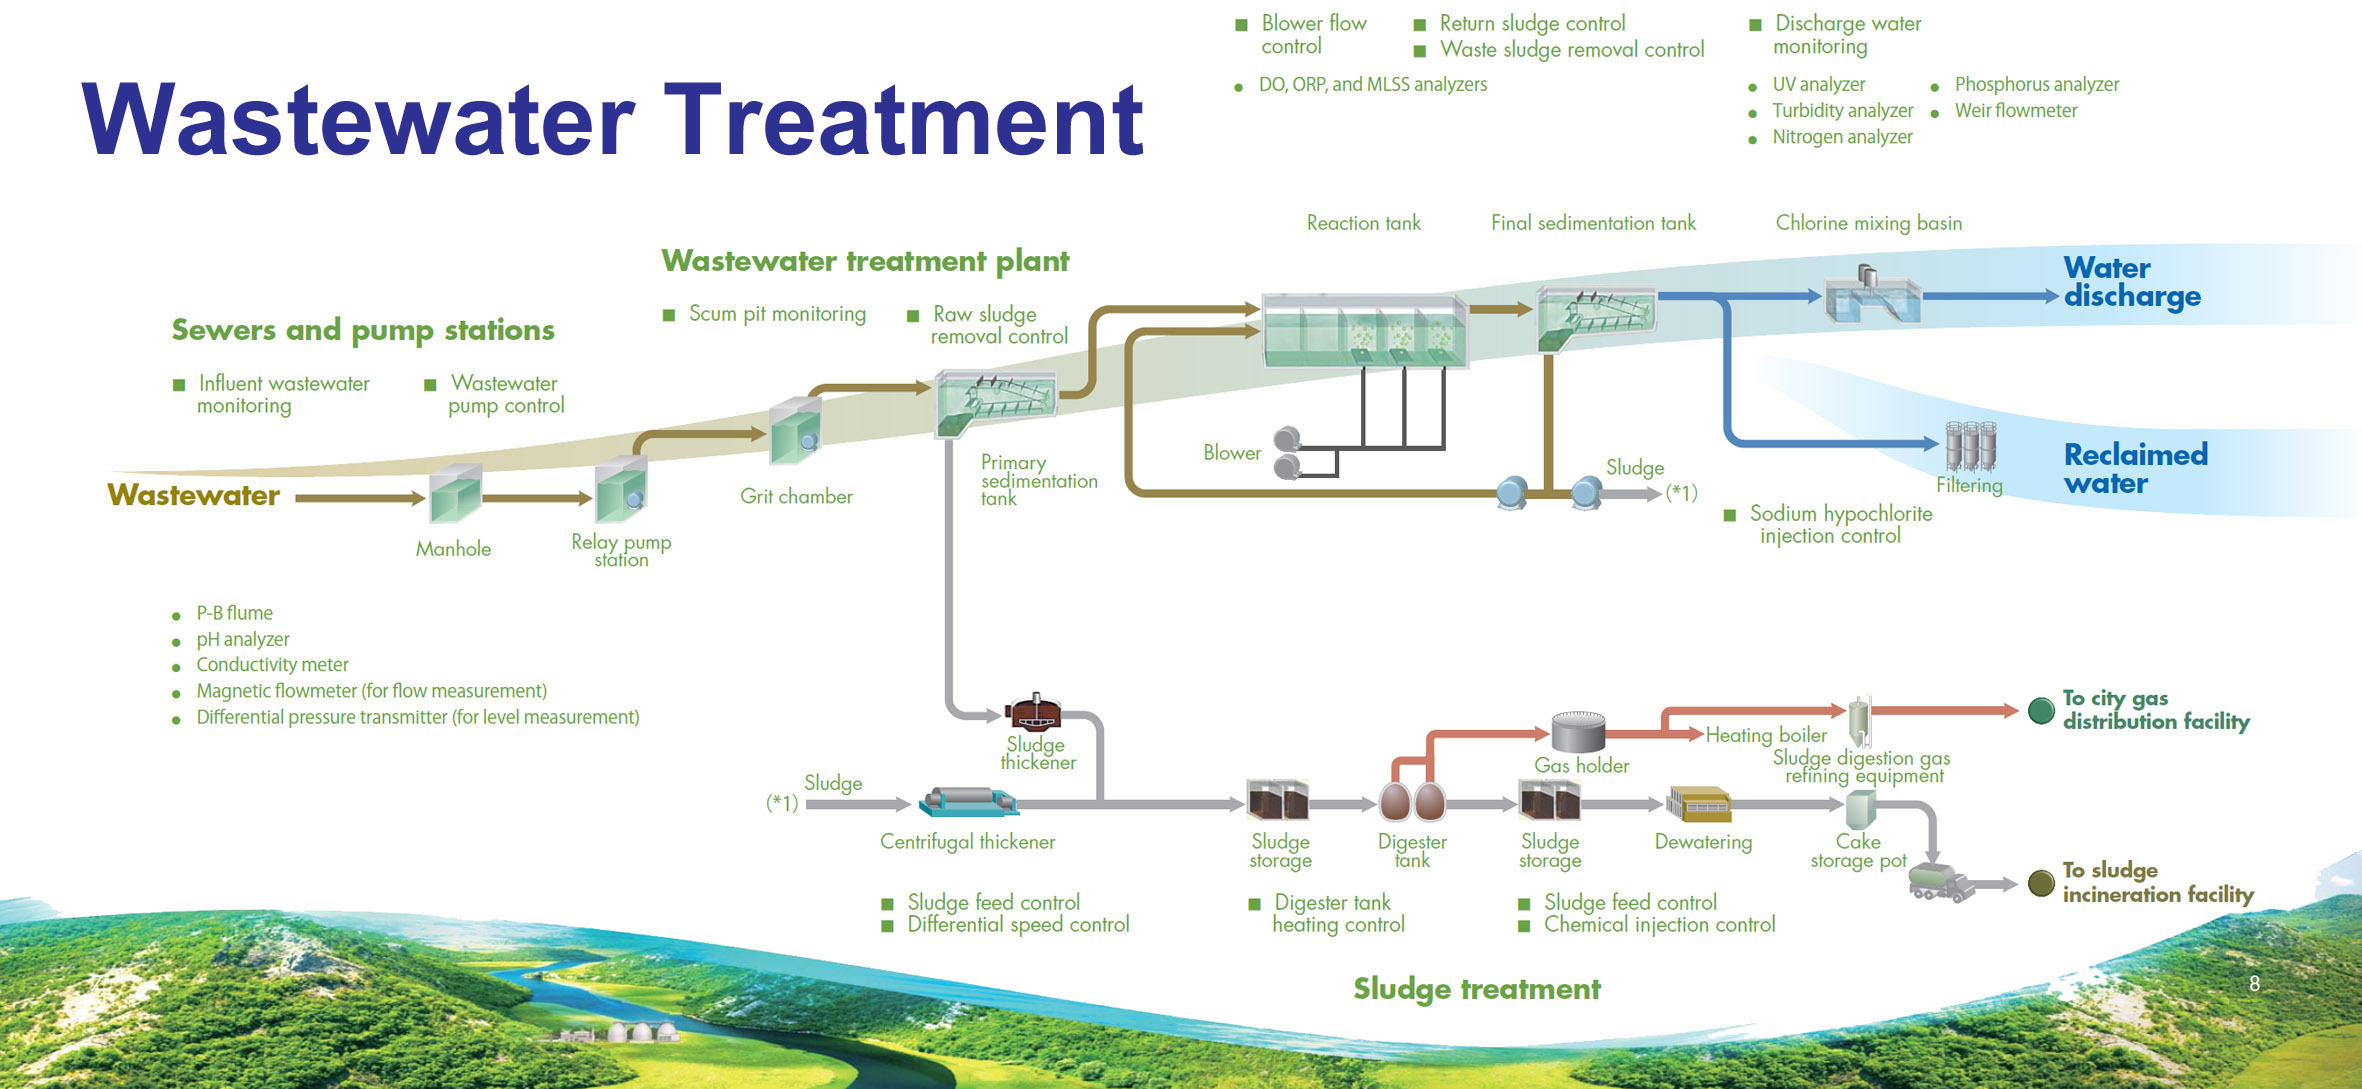 Wastewater Treatment Yokogawa Electric Corporation